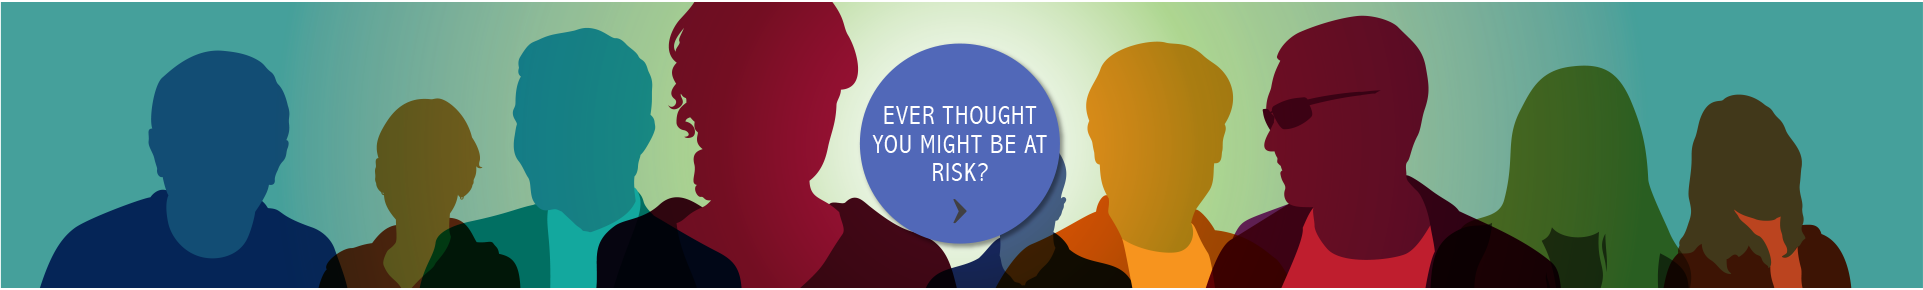 Ever thought you might be at risk?